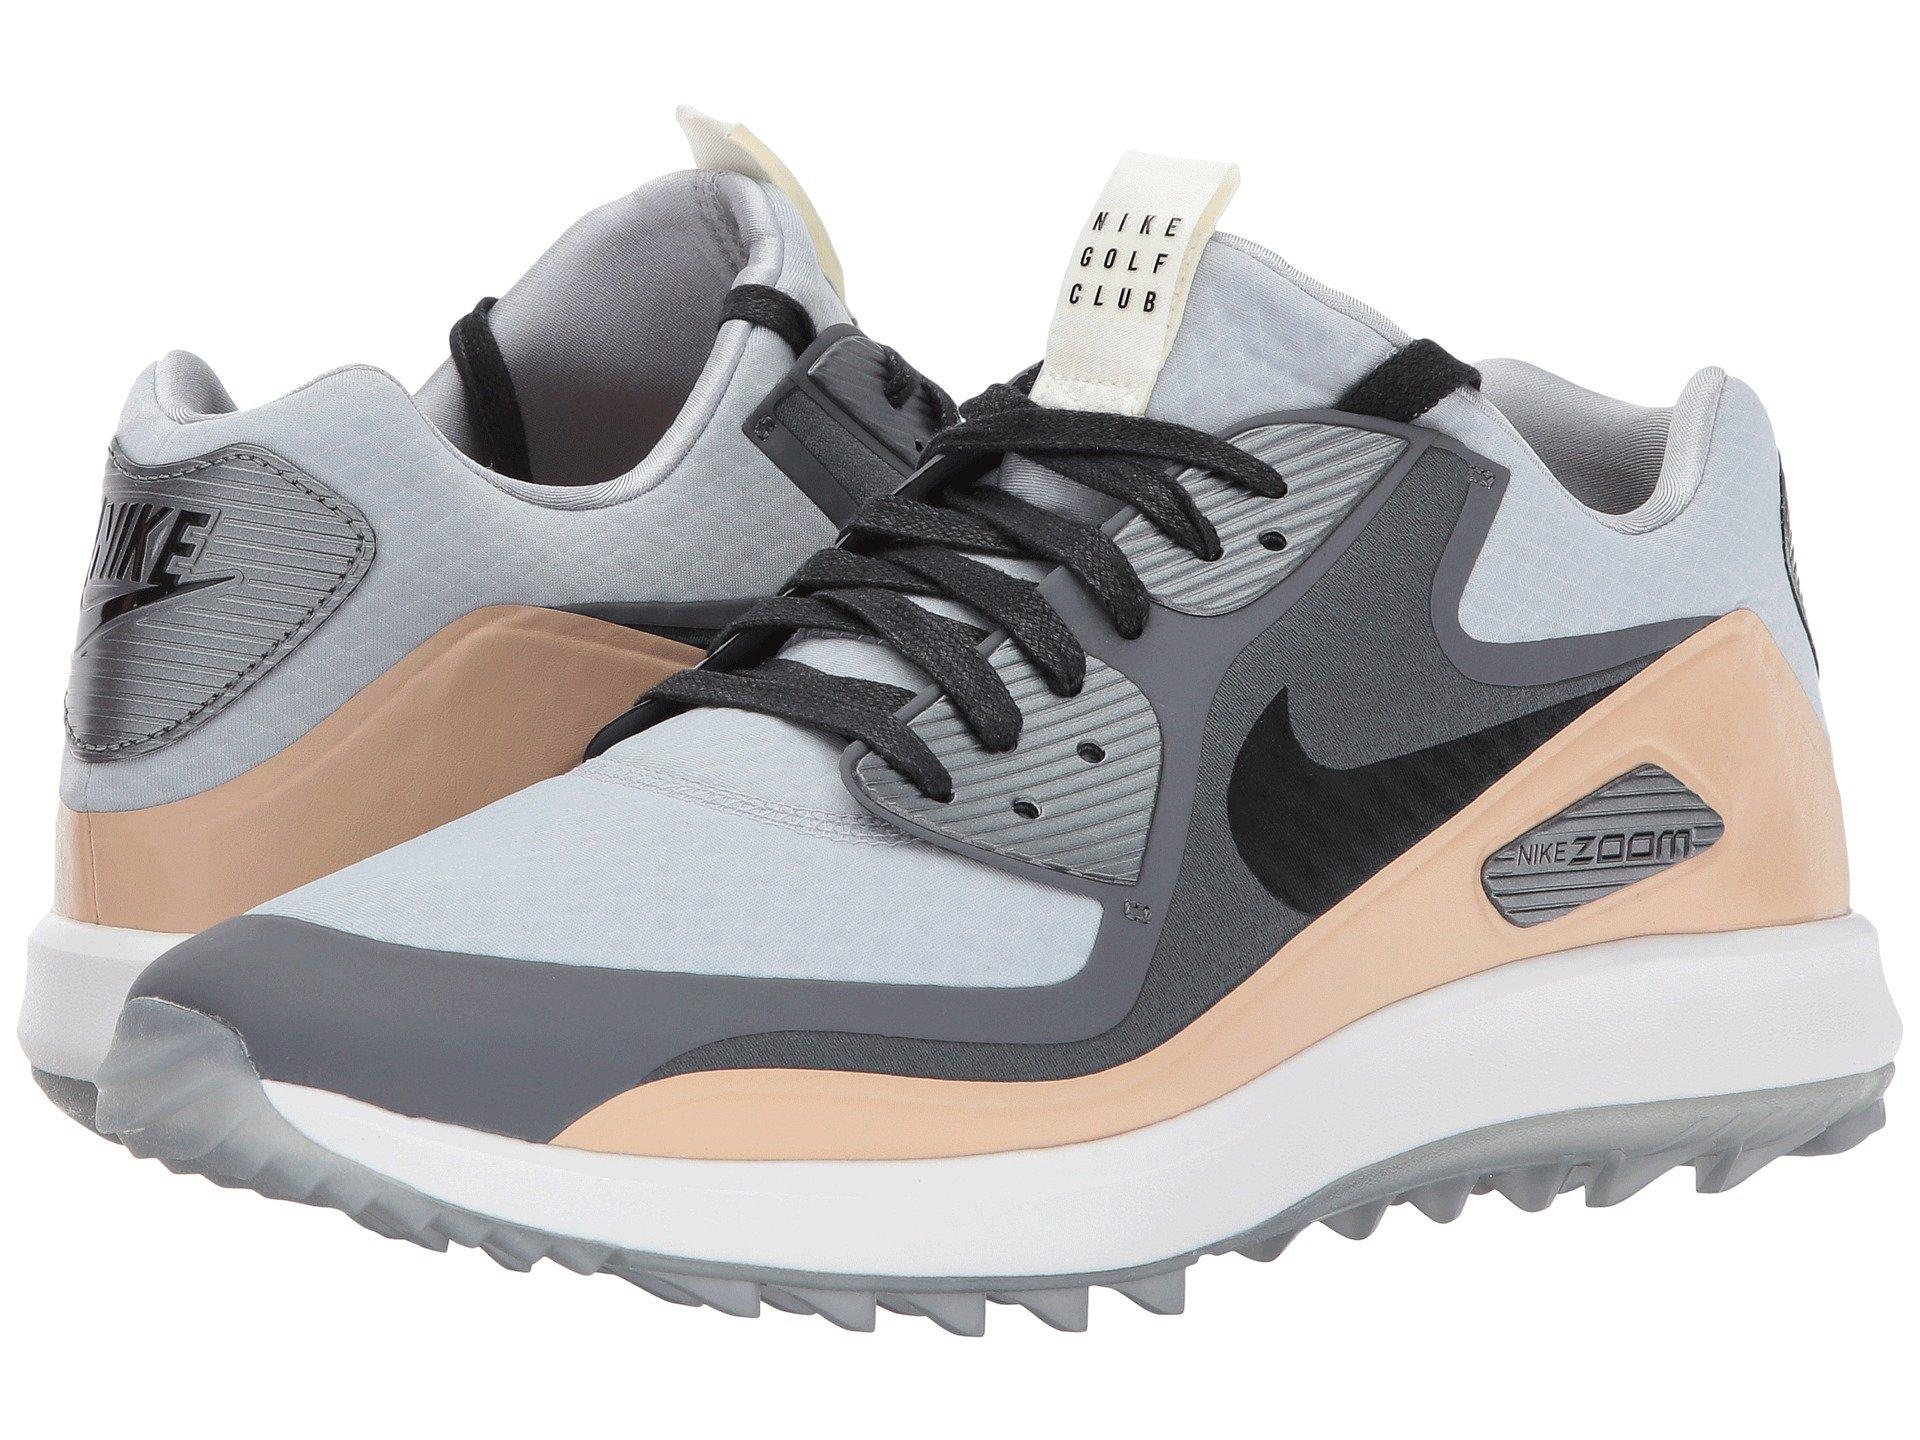 a95a90158200 Lyst - Nike Zoom 90 It Ngc in Gray for Men